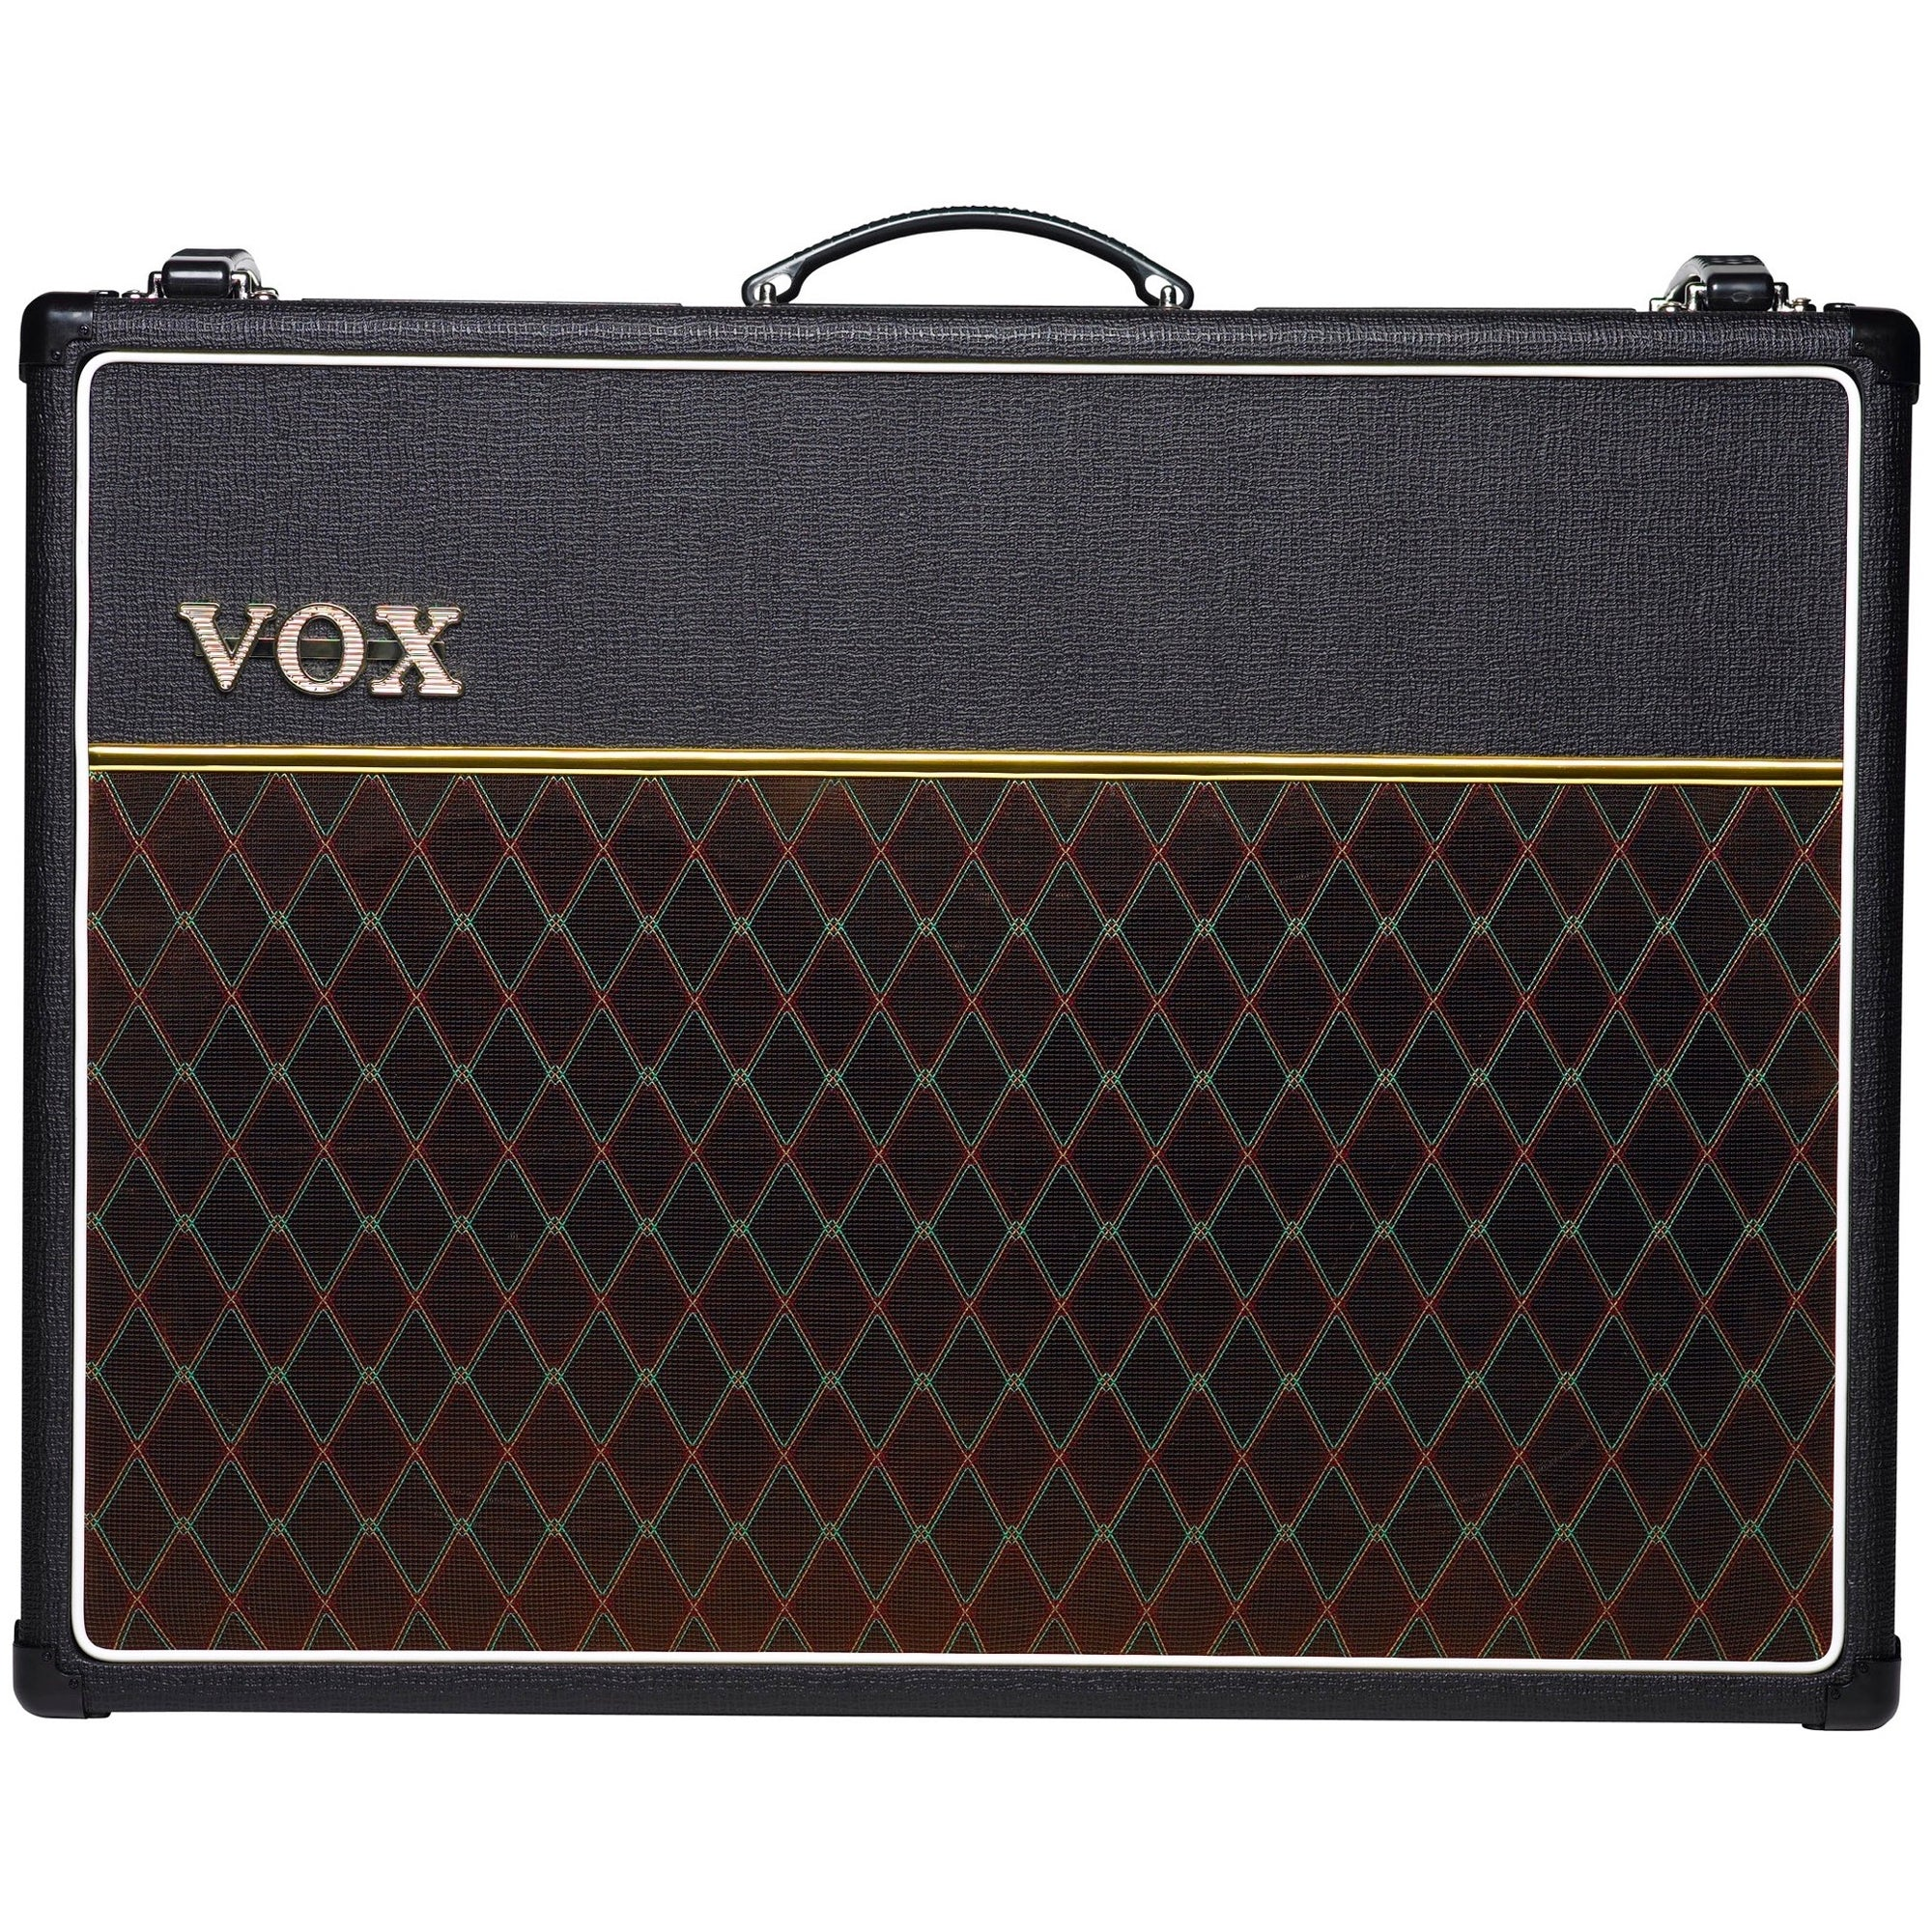 Vox AC30C2 / AC30C2X Guitar Combo Amplifier (30 Watts, 2x12 Inch), AC30C2X, with Celestion Alnico Blue Speakers